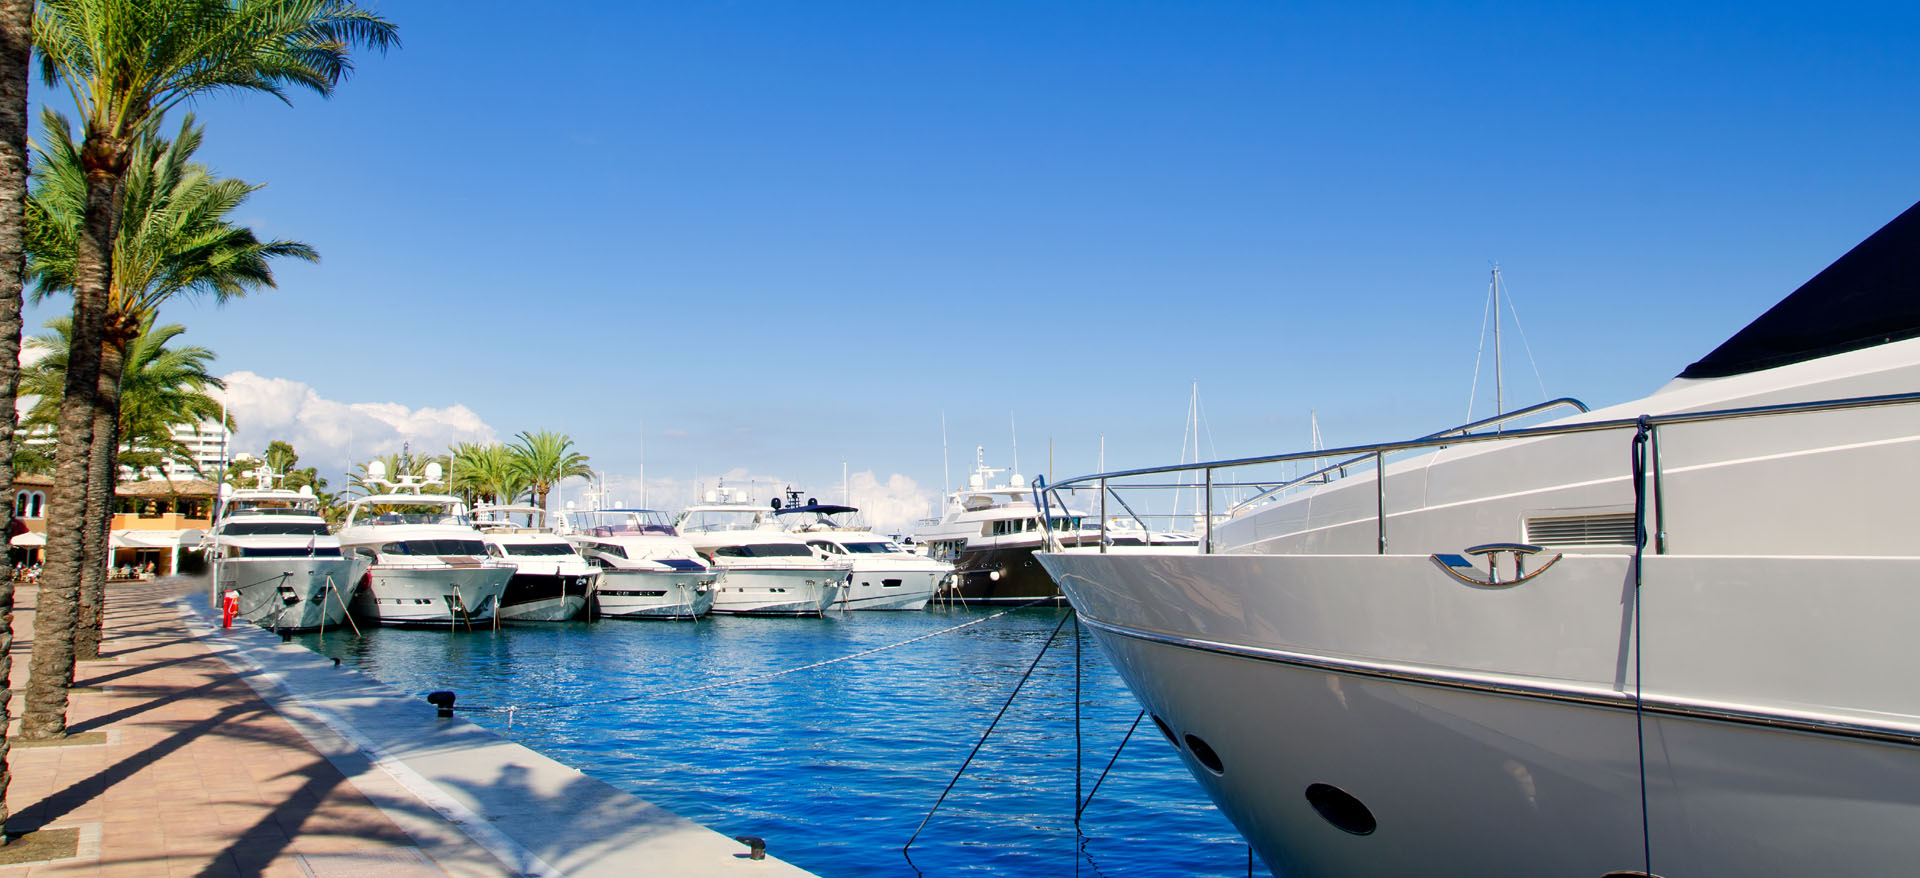 Explore Puerto Portals, Mallorca in Luxurious Style with Portals Nous Boat Charters